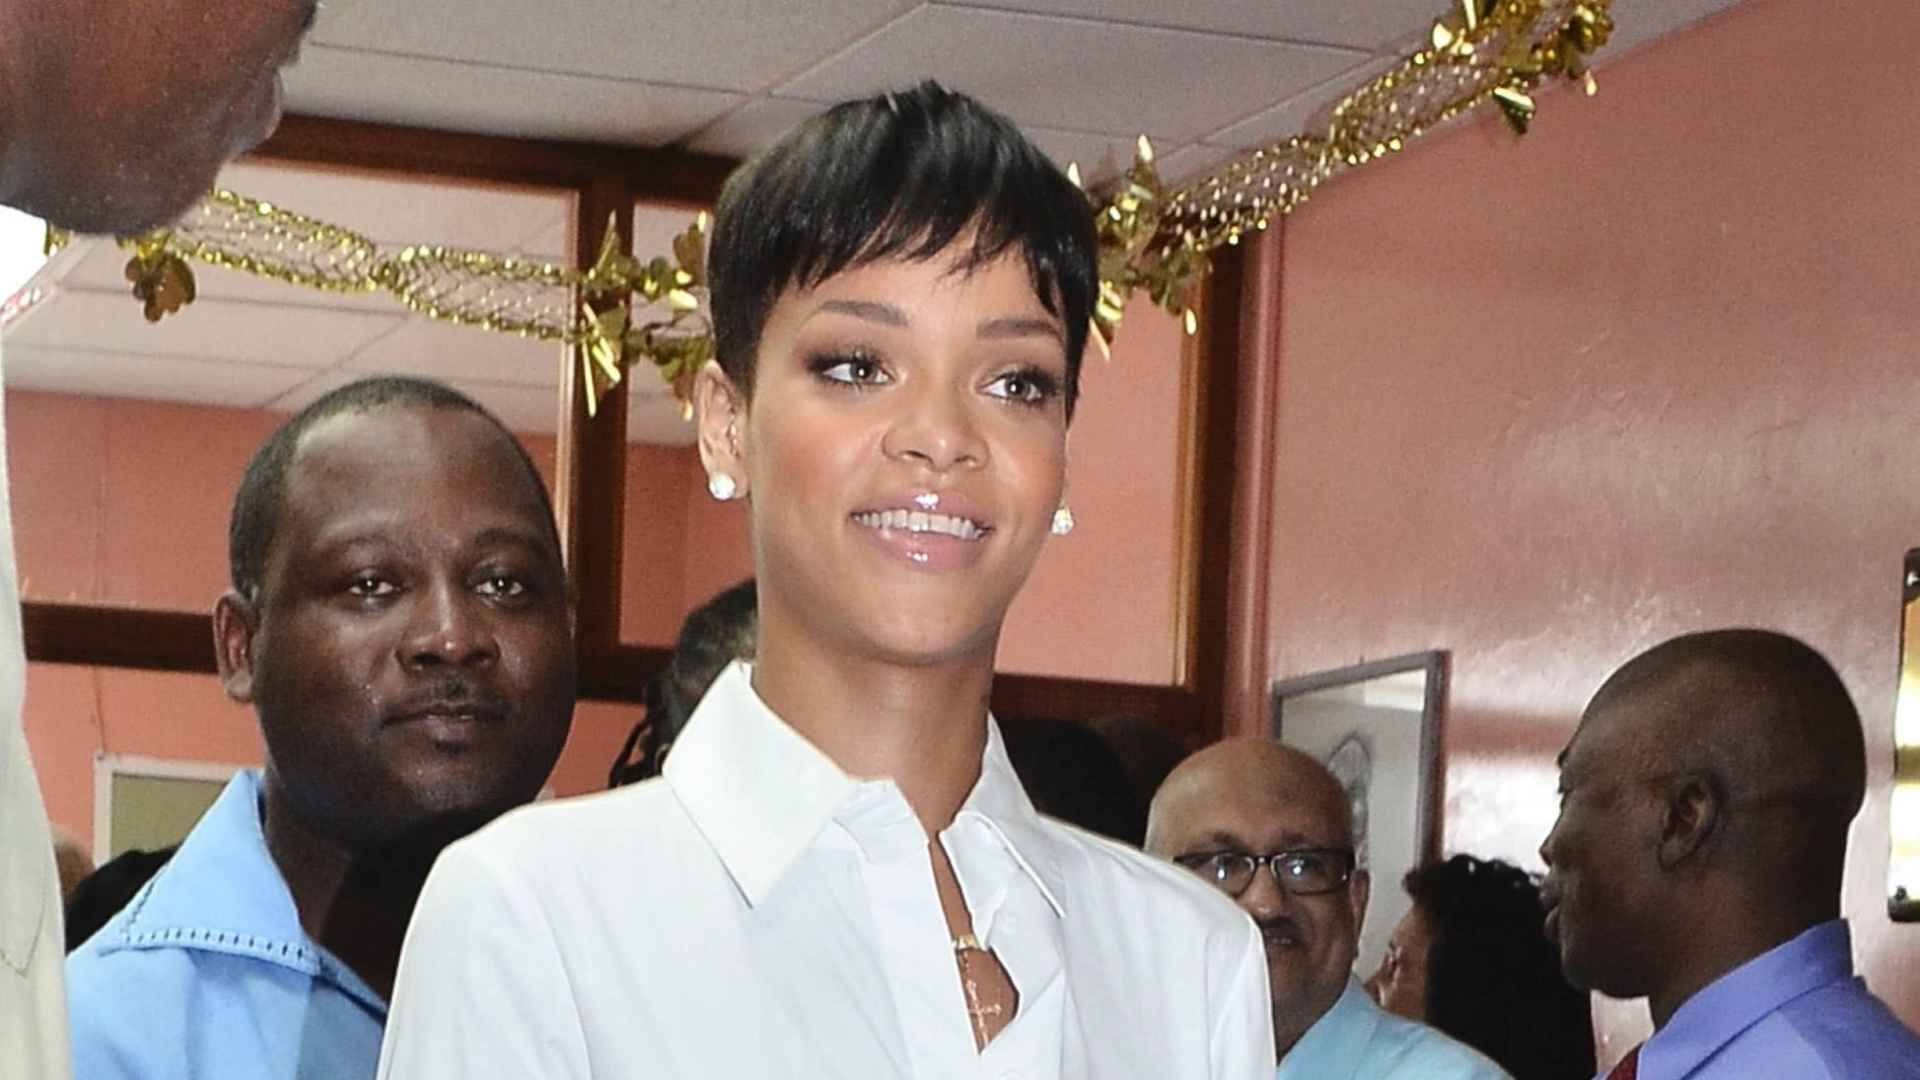 22.dez.2012 - Rihanna visitou o hospital  Queen Elizabeth, em Barbados, Caribe